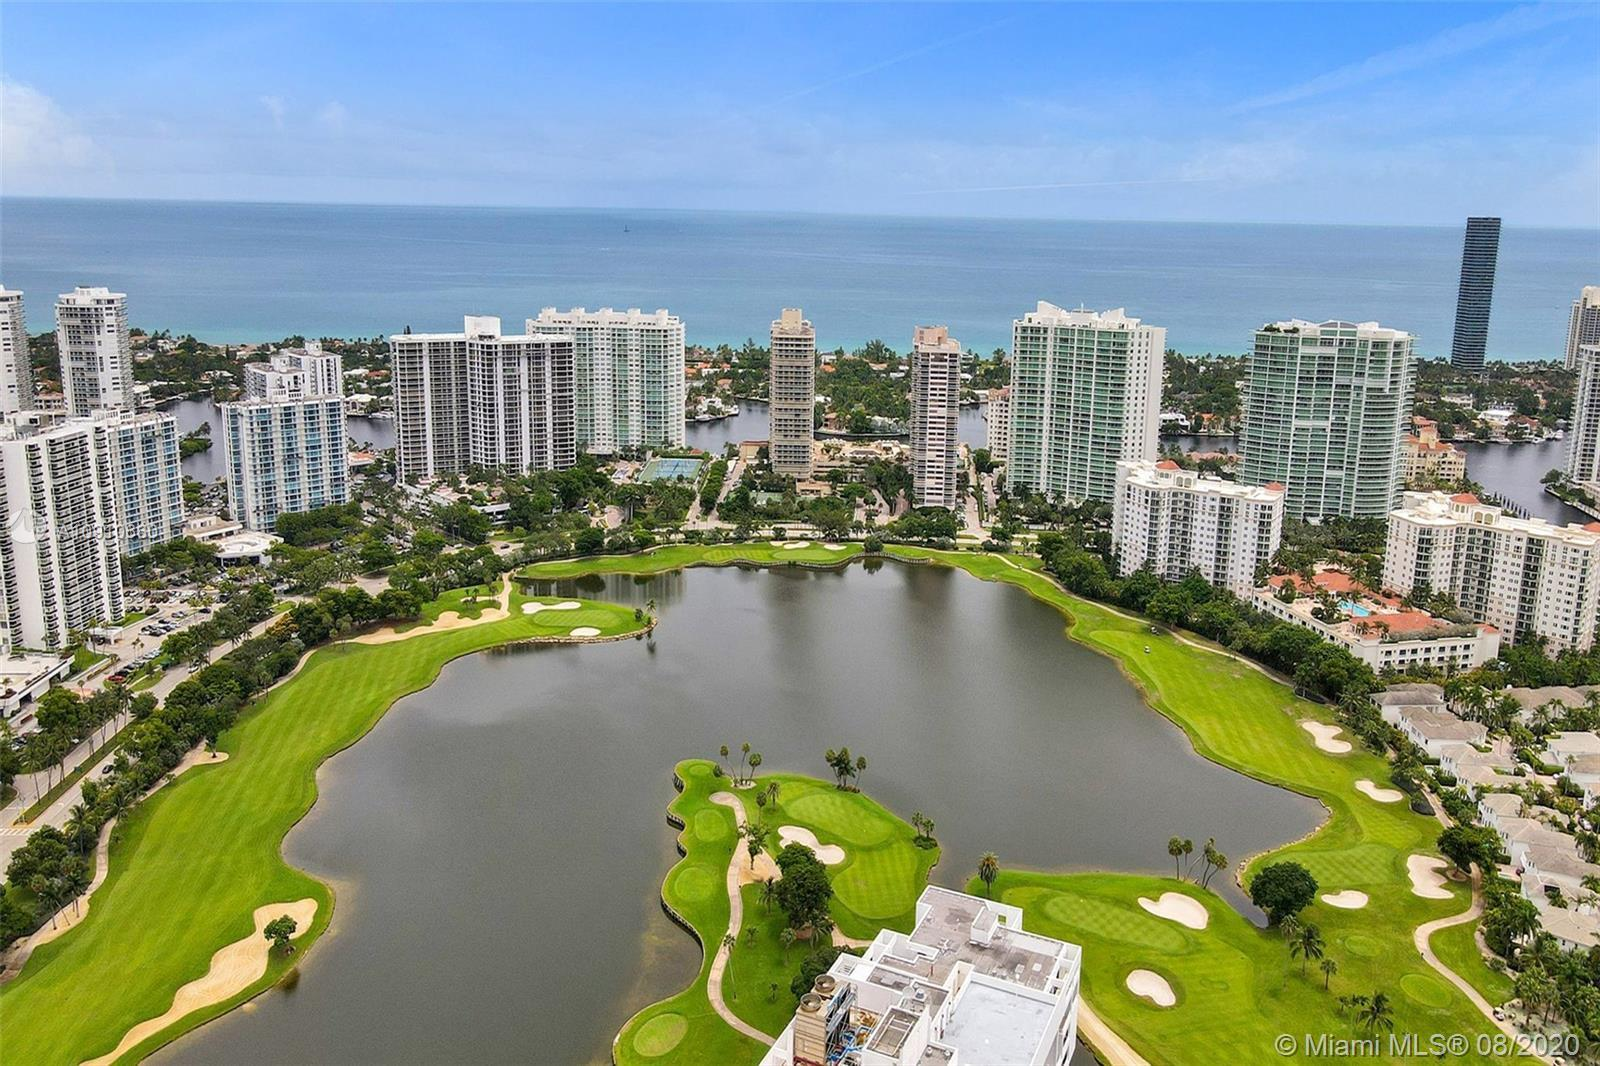 It is Back on the Market, and the Seller is Very Motivated. It has an amazing MILIONARIE view from t